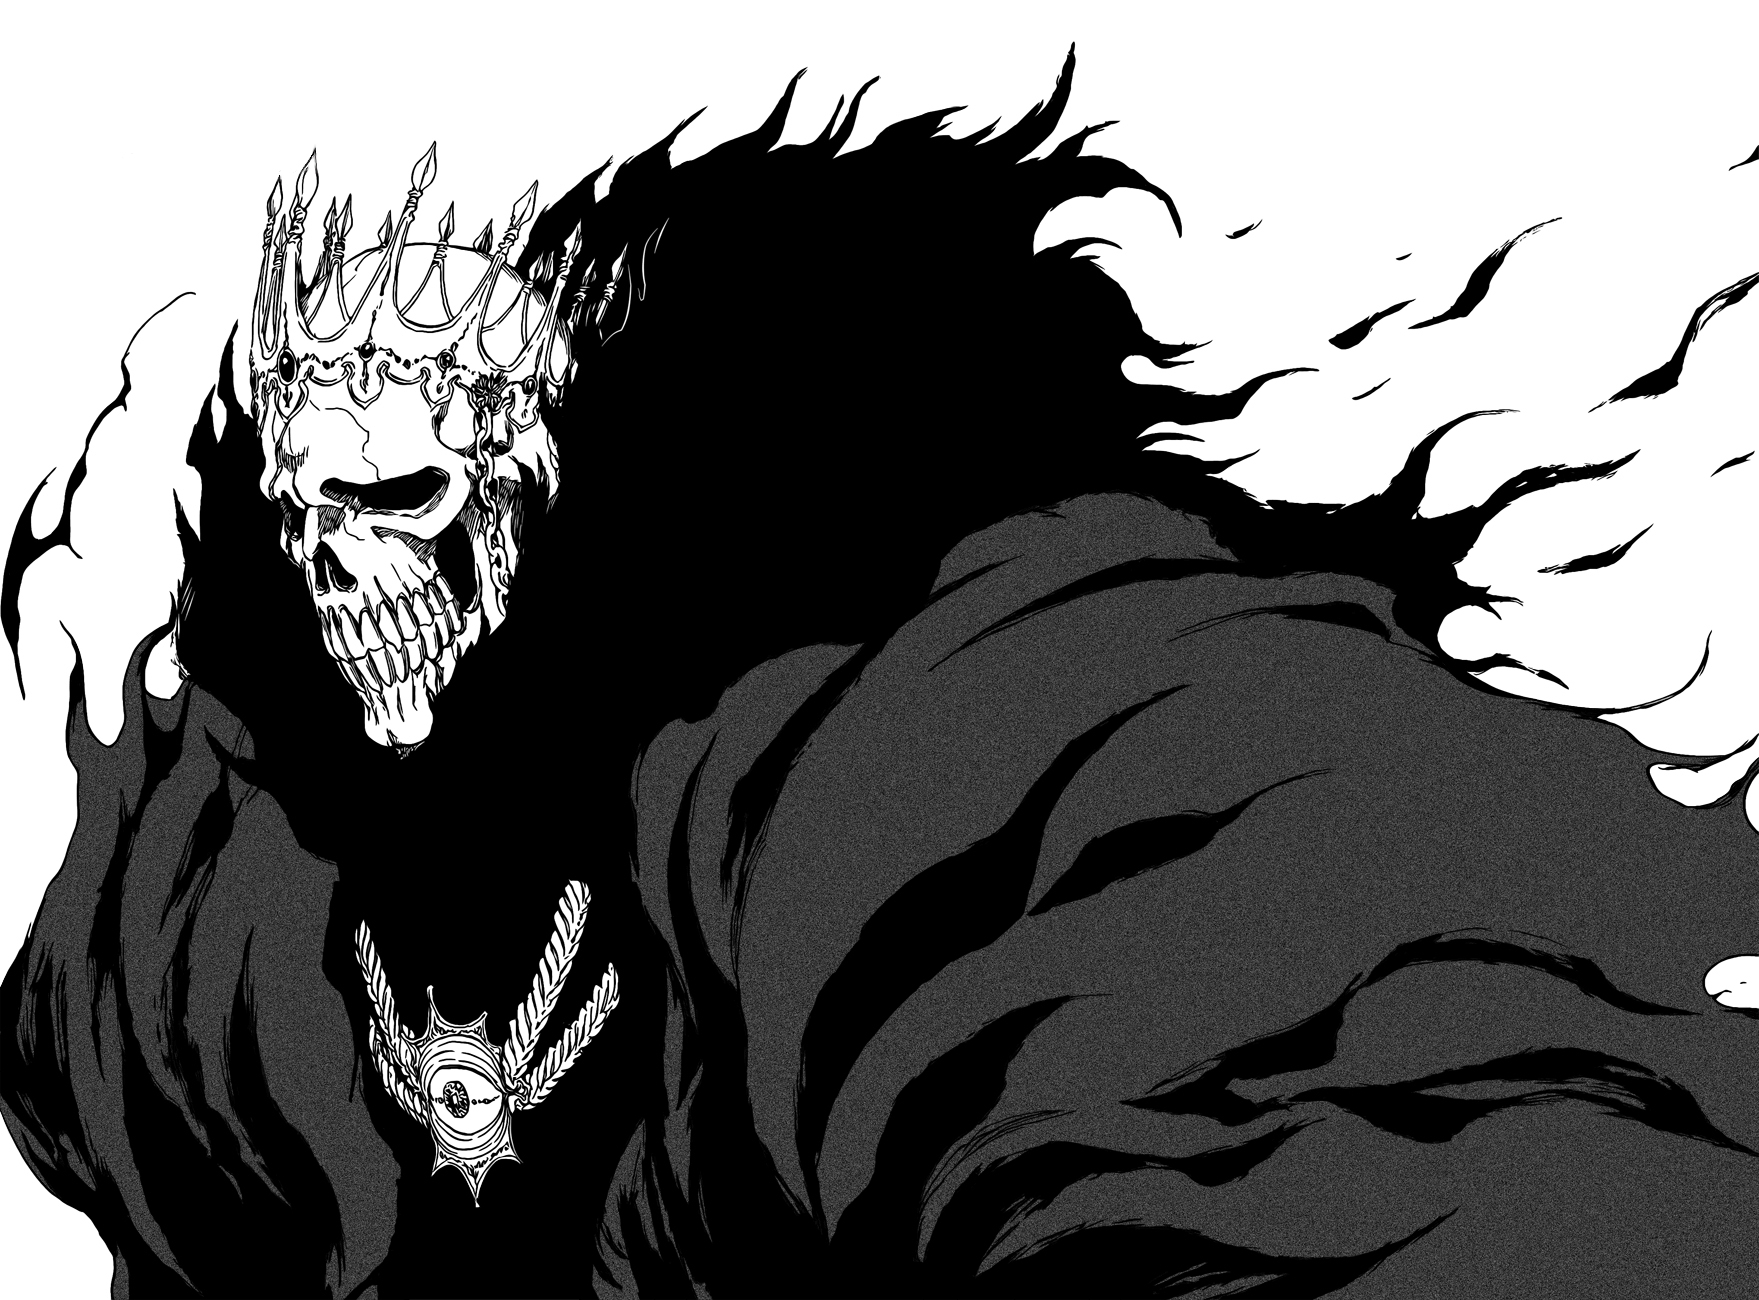 [Bleach] Top 5-  Personagens com melhor design  __baraggan_louisenbairn_bleach_drawn_by_kubo_taito__1b3a8c72d9a44ad082071d27dc05033b